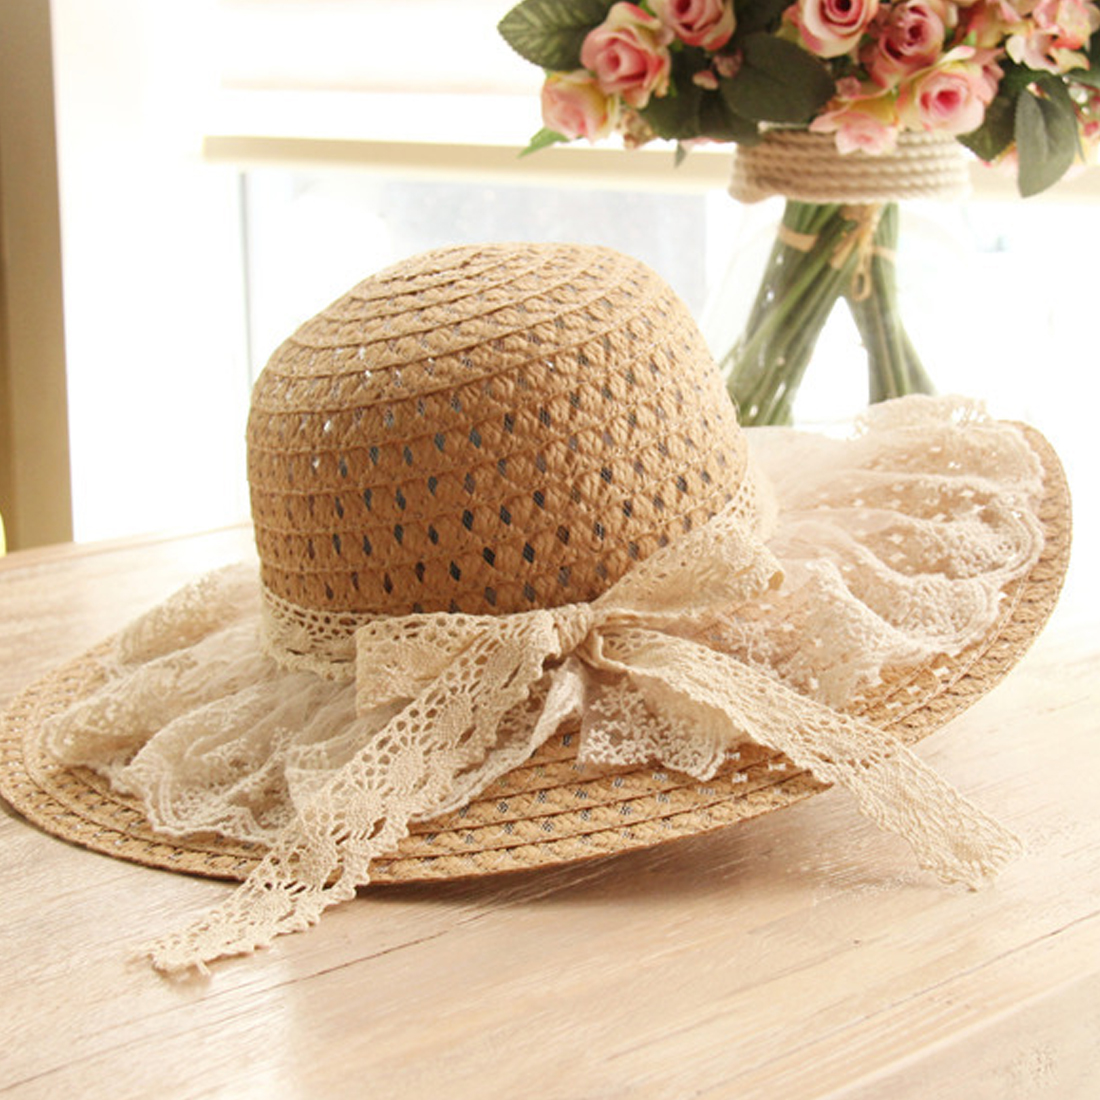 fb2021b342004 Hot Fashion Lace Summer Sun Hats For Women New Fashion Wide Brim Beach Side  Cap Floppy Female Straw Hat Lace